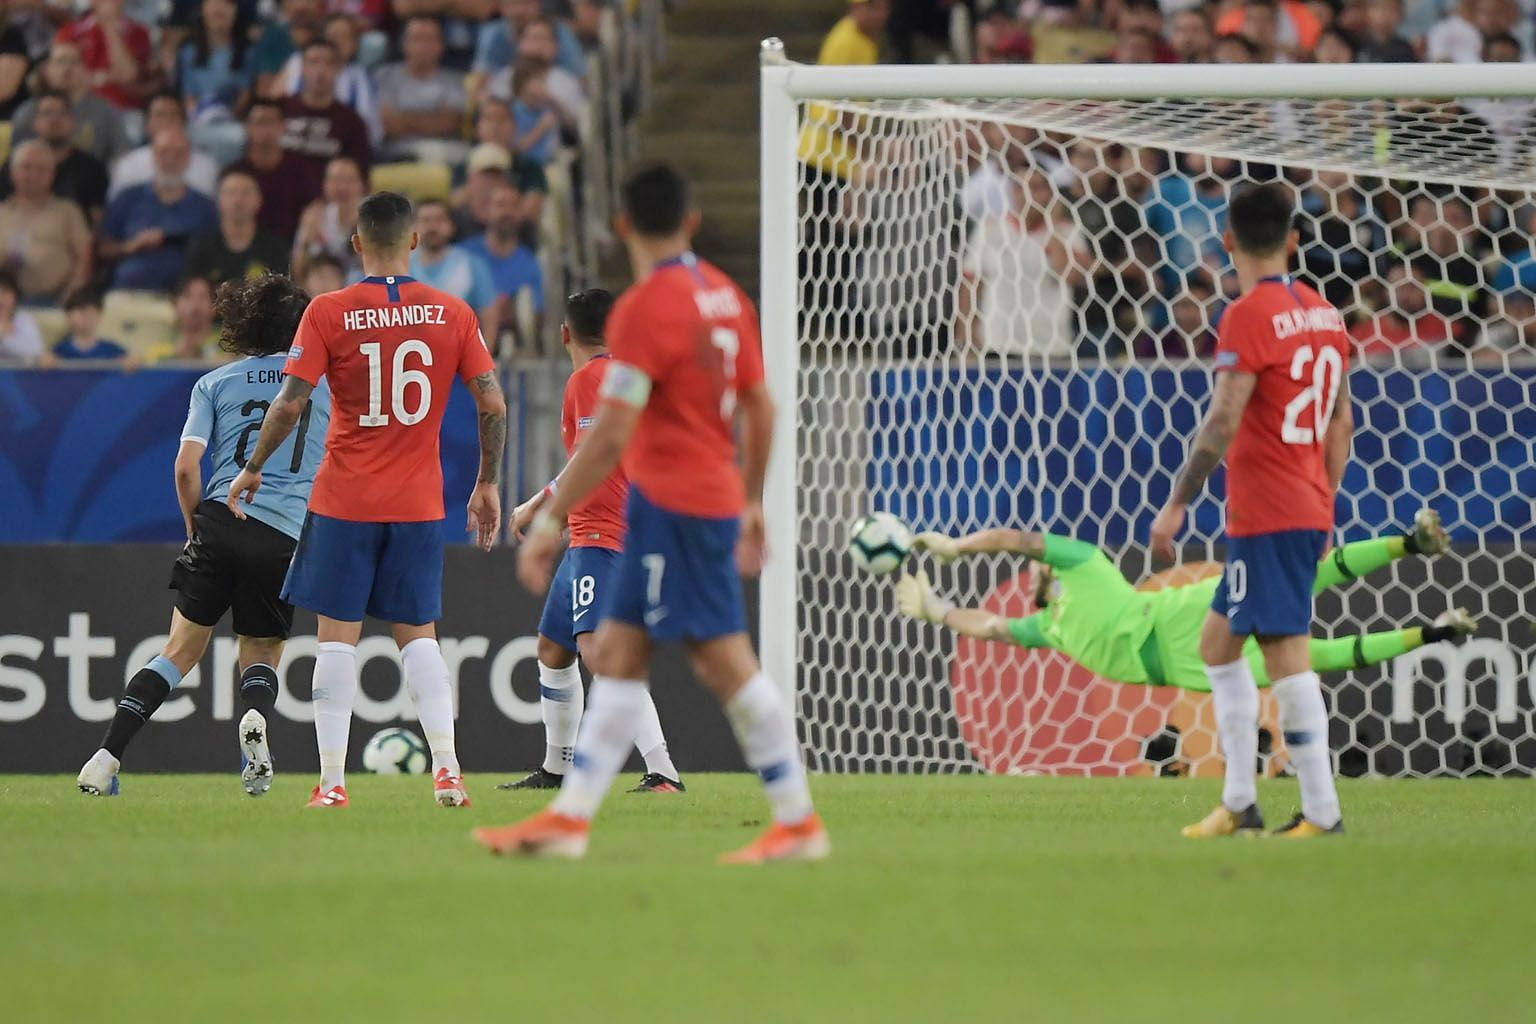 Uruguay's Edinson Cavani heading past Chile goalkeeper Gabriel Arias for the only goal of the Copa America match at Maracana Stadium in Rio de Janeiro, Brazil on Monday. Both teams made the quarter-finals. PHOTO: AGENCE FRANCE-PRESSE